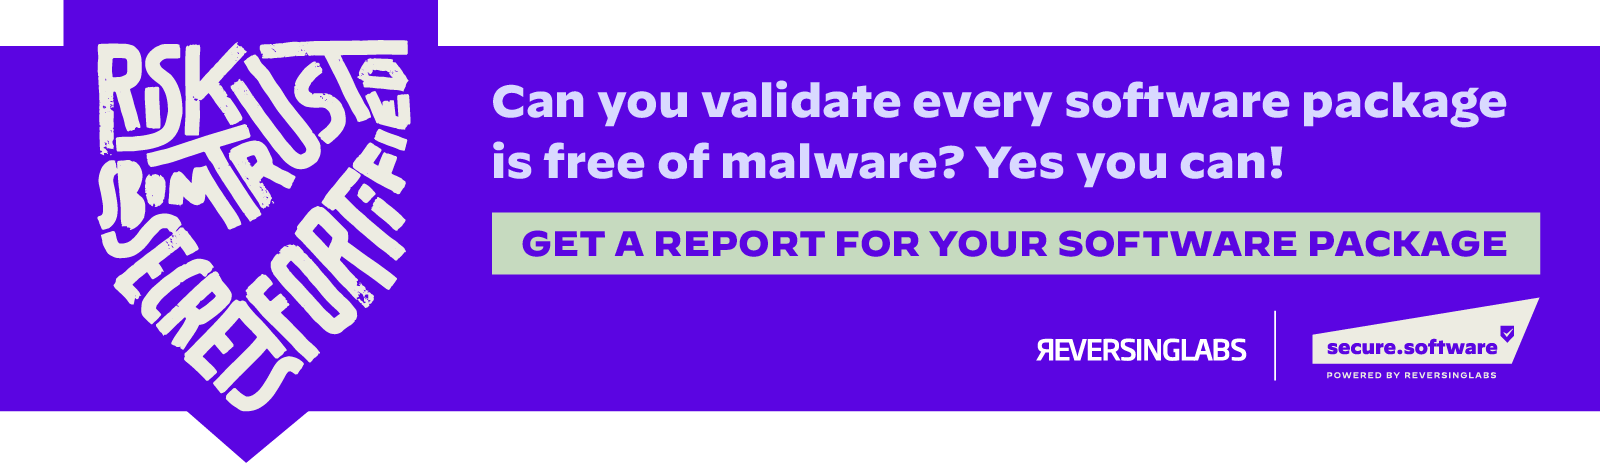 Get a report for YOUR software package